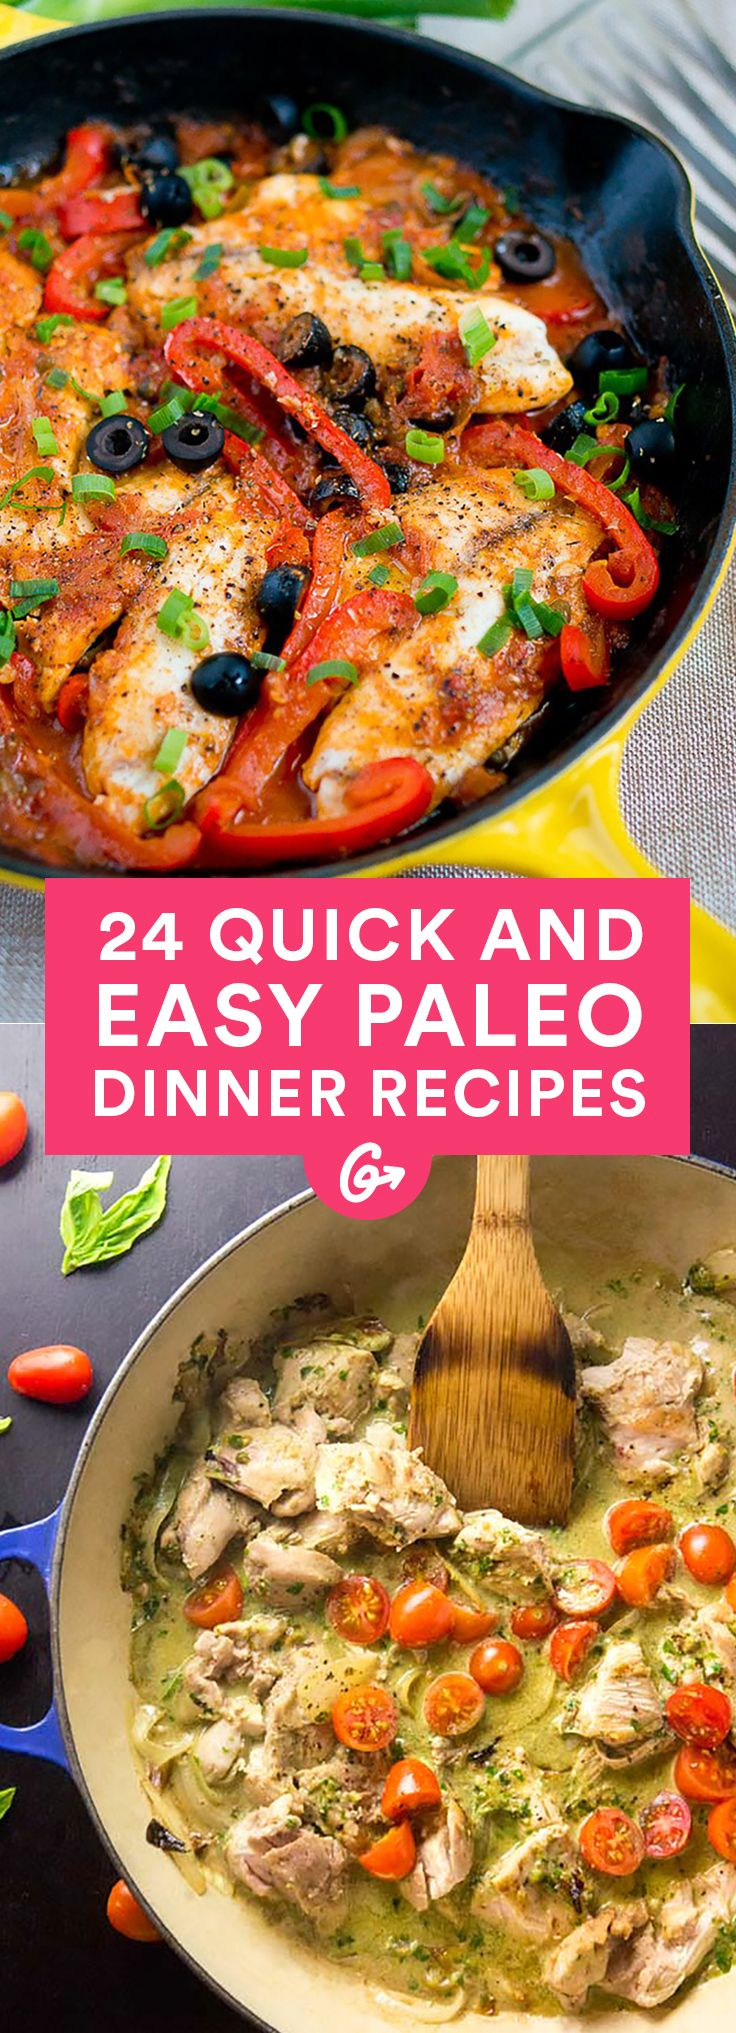 Whatever diet you're following, these simple recipes will have your mouth watering. #paleo #dinner #recipes http://greatist.com/eat/paleo-recipes-easy-and-delicious-dinners